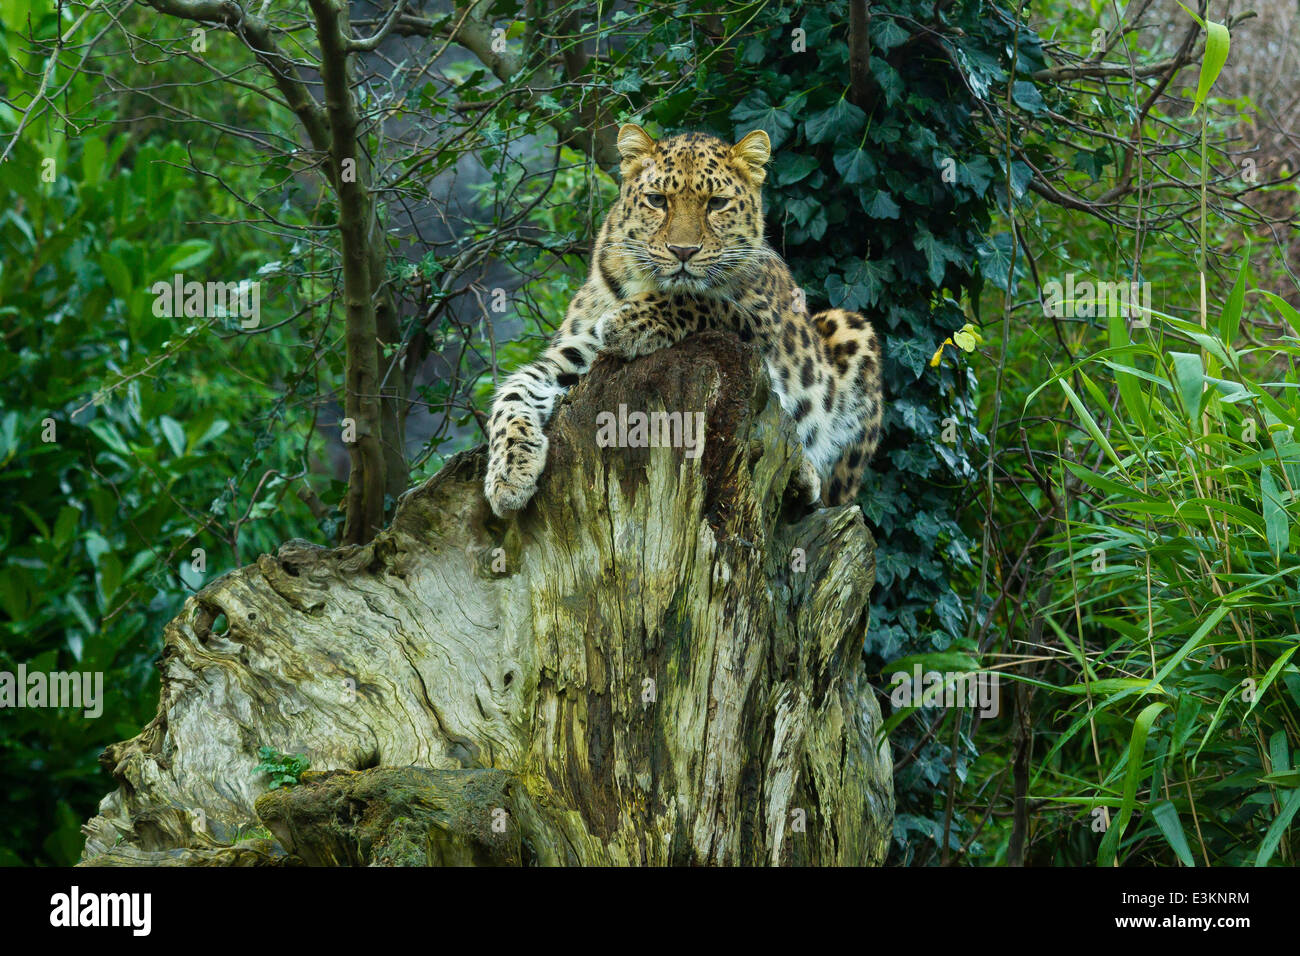 Extremely Rare Amur Leopard  (Panthera Pardus Orientalis) On Tree Stump - Stock Image